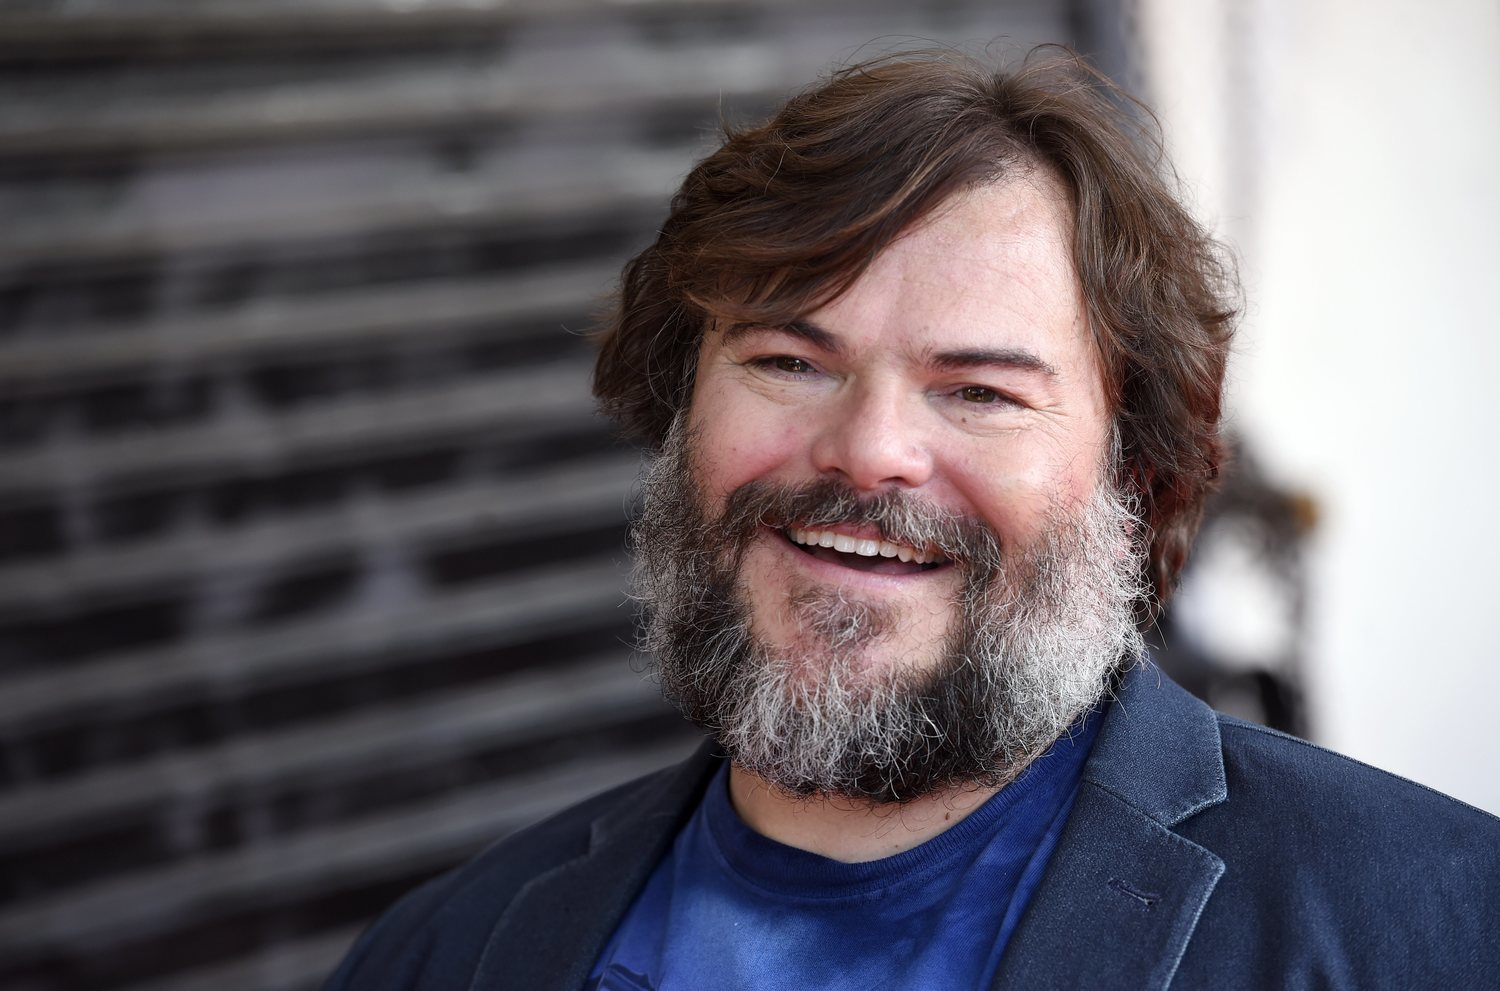 Jack Black, un gordo con estilazo genuino